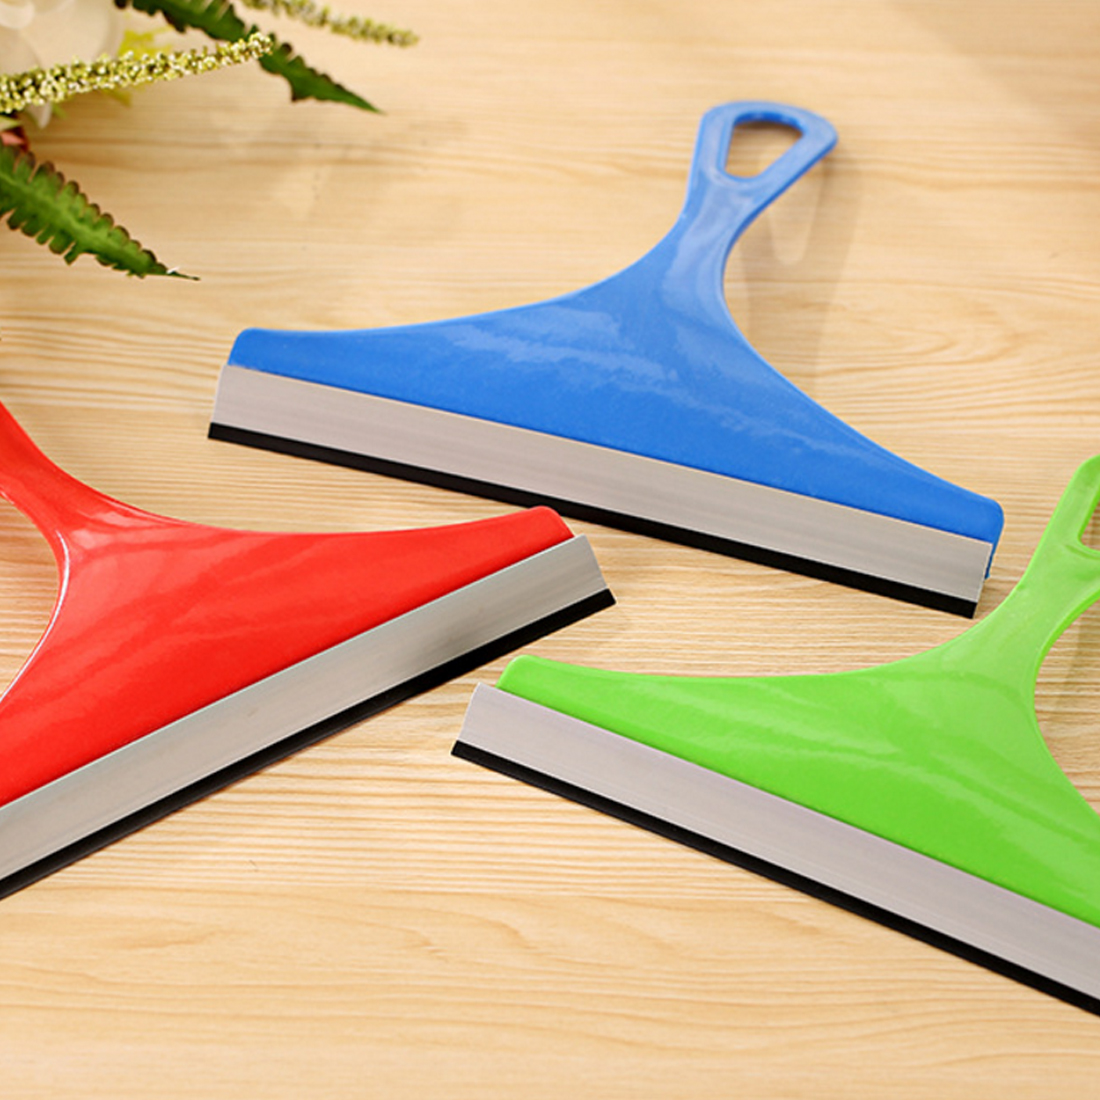 BU-Bauty Silicone Water Wiper Soap Cleaner Scraper Blade Squeegee Car Vehicle Windshield Window Washing Cleaning Accessories Au